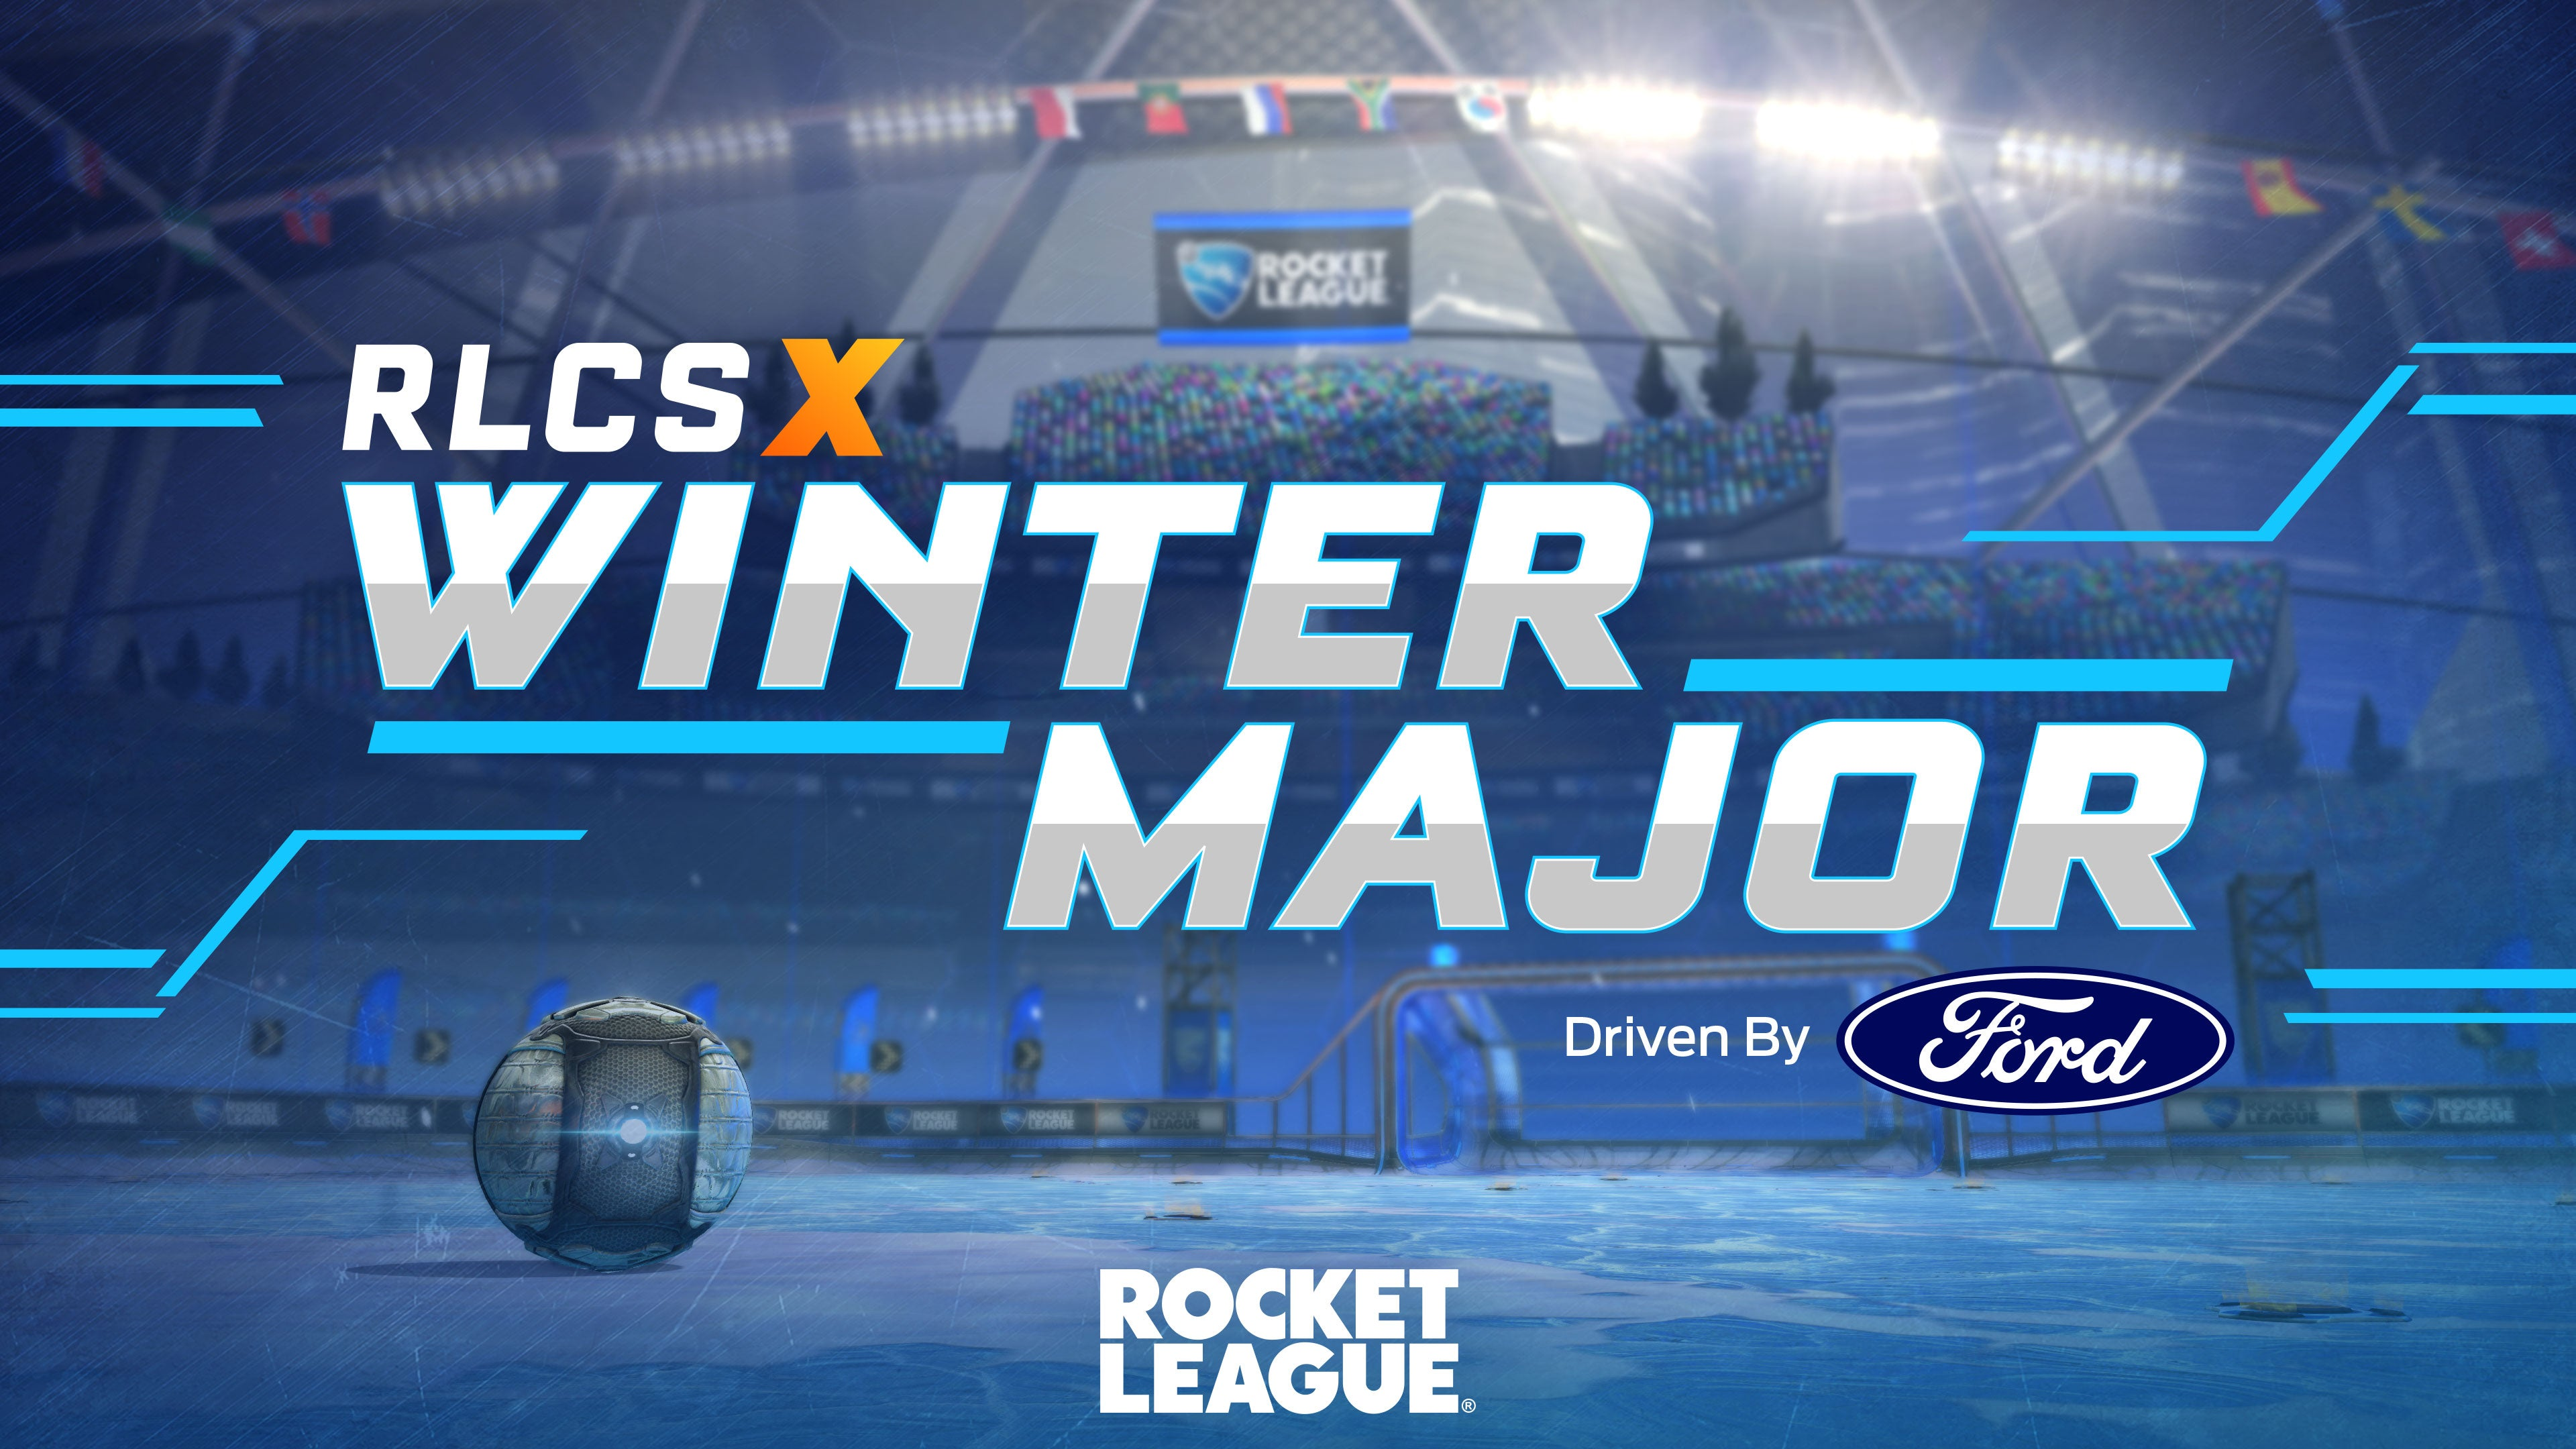 La RLCS X South American Winter Major ¡comienza mañana!